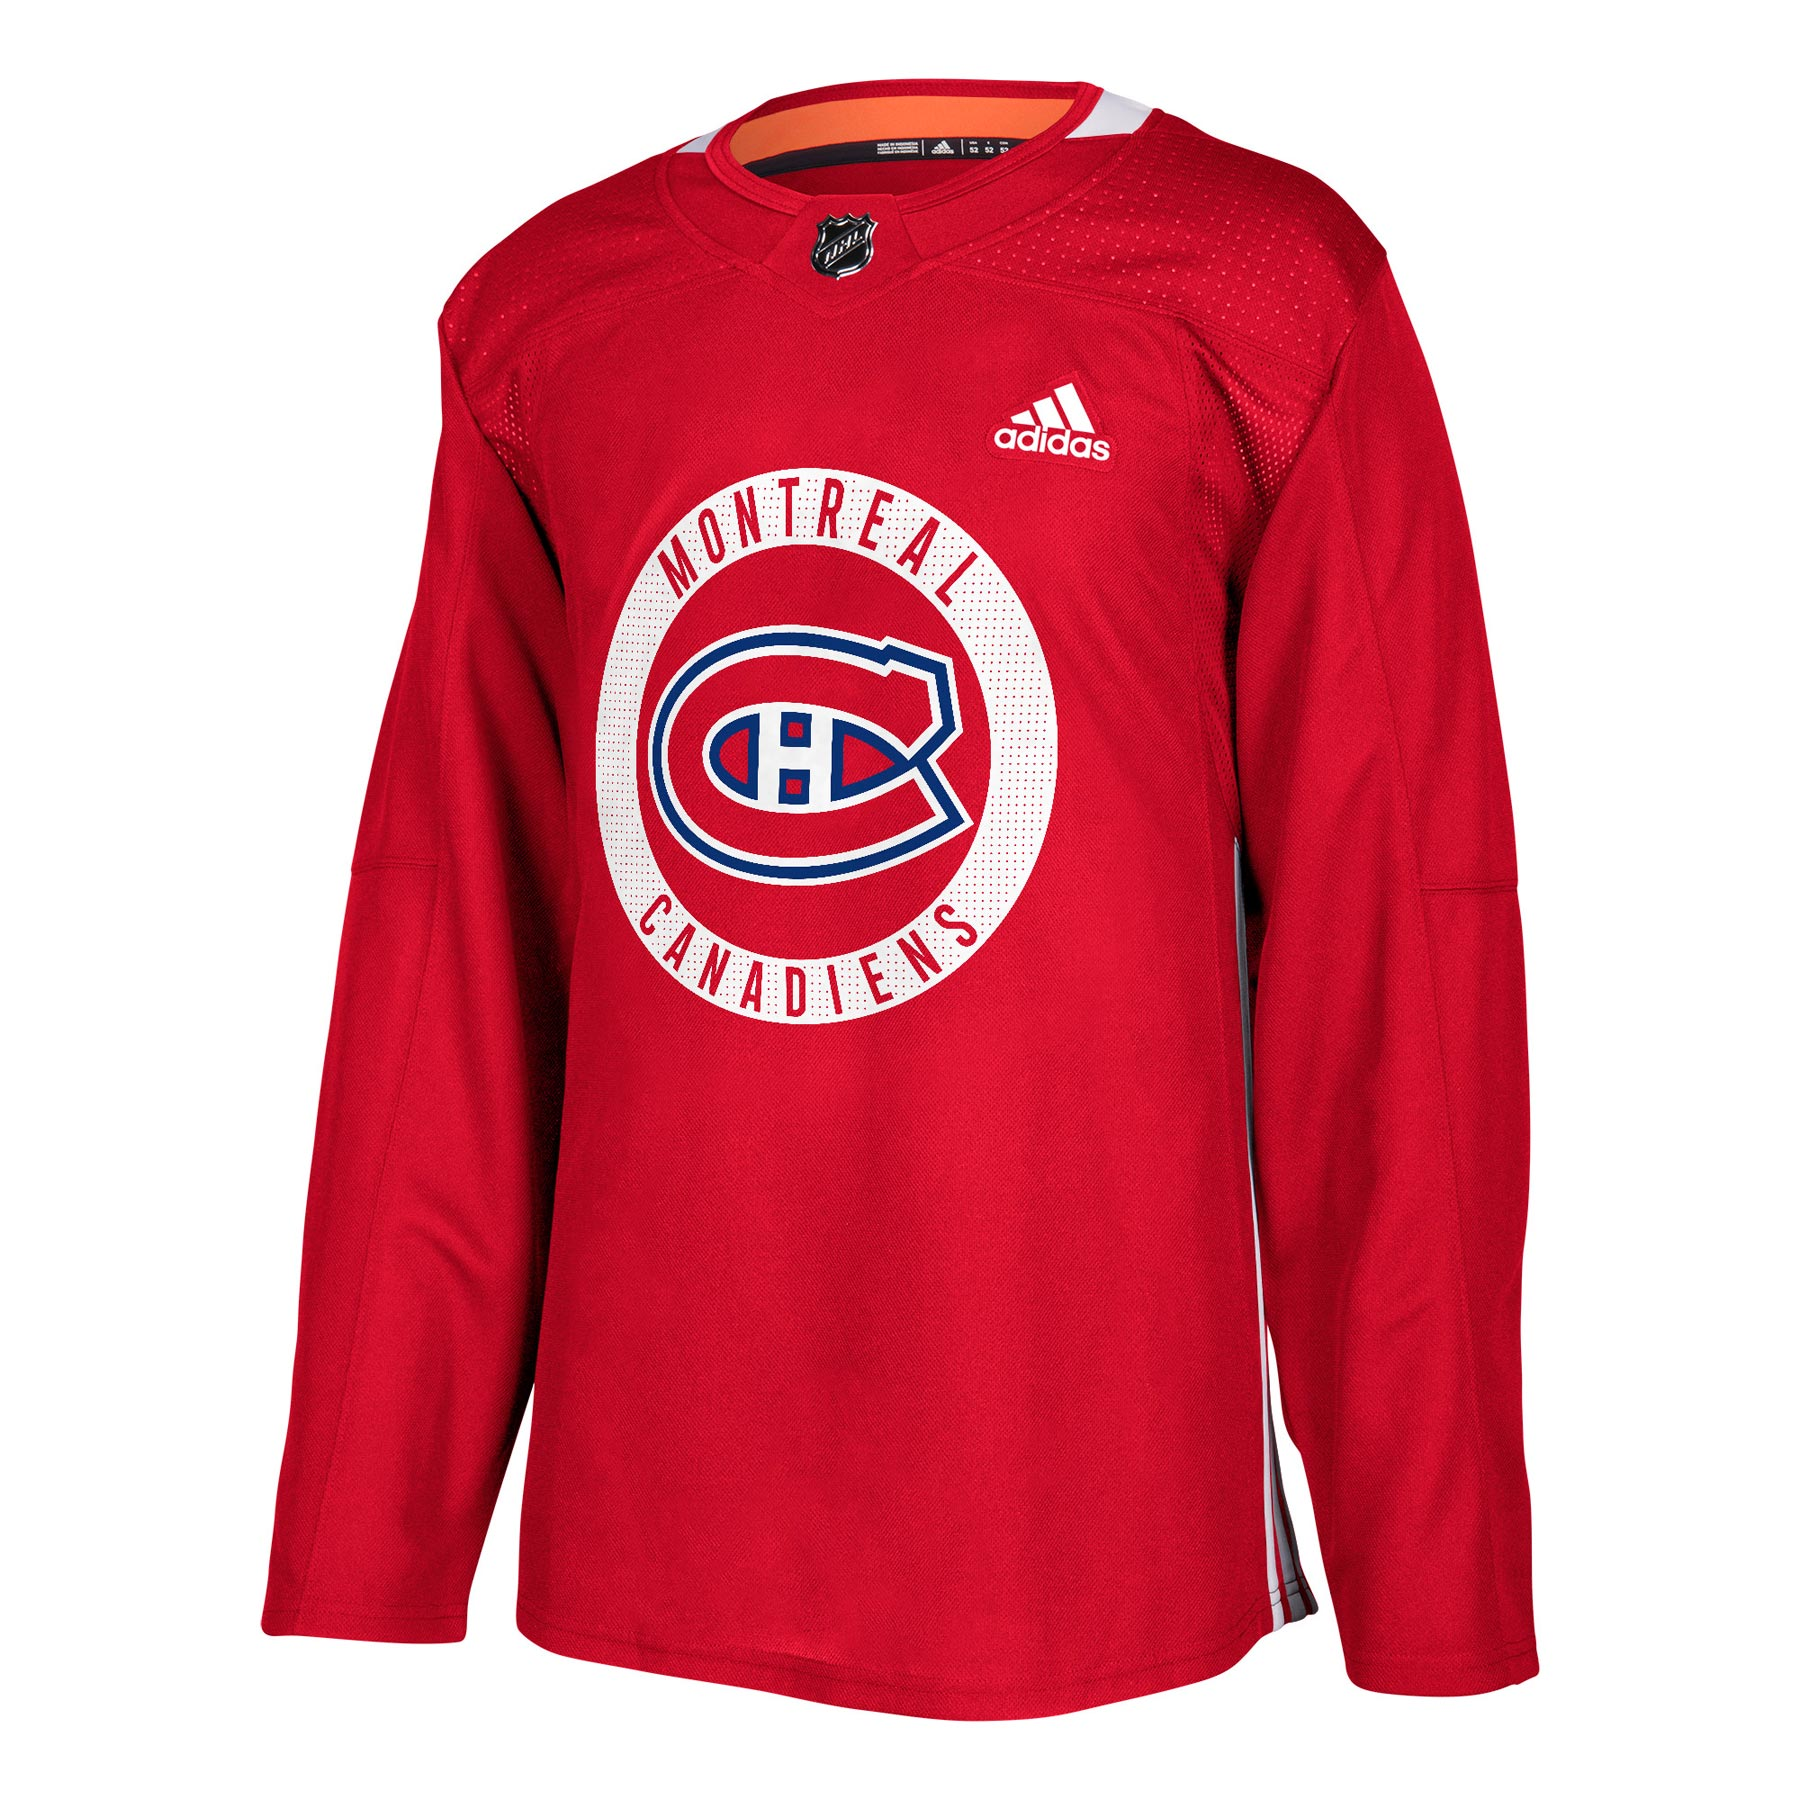 Montreal Canadiens adidas adizero NHL Authentic Pro Practice Jersey - Red.  Hover to Zoom 2ec7cc326